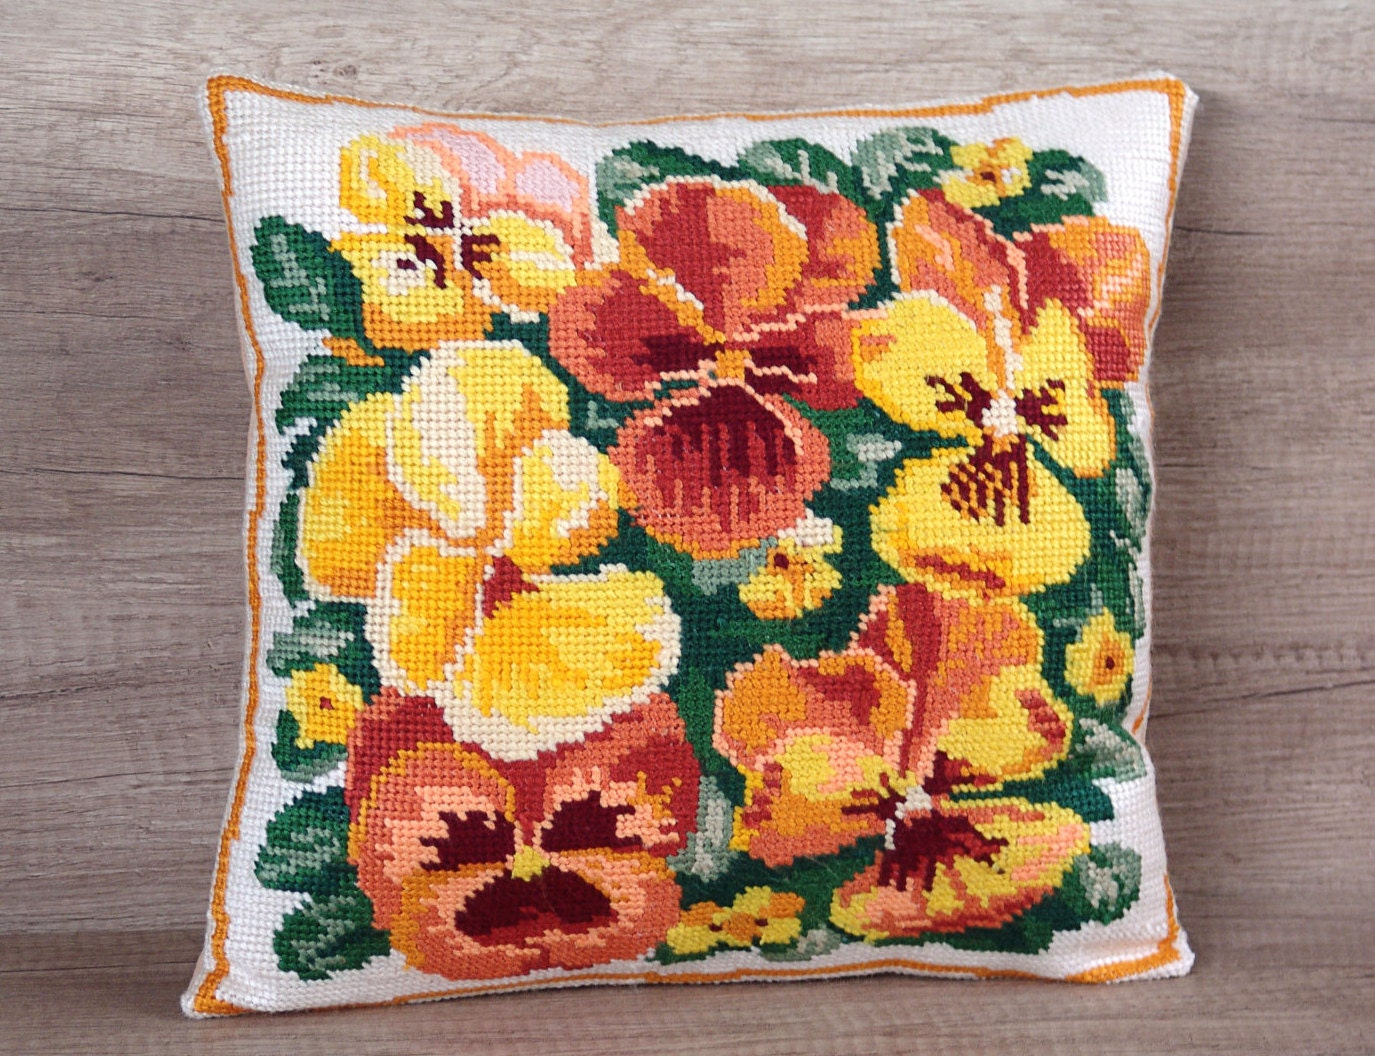 Cross-stitch embroidery flower pillow cover colorful modern